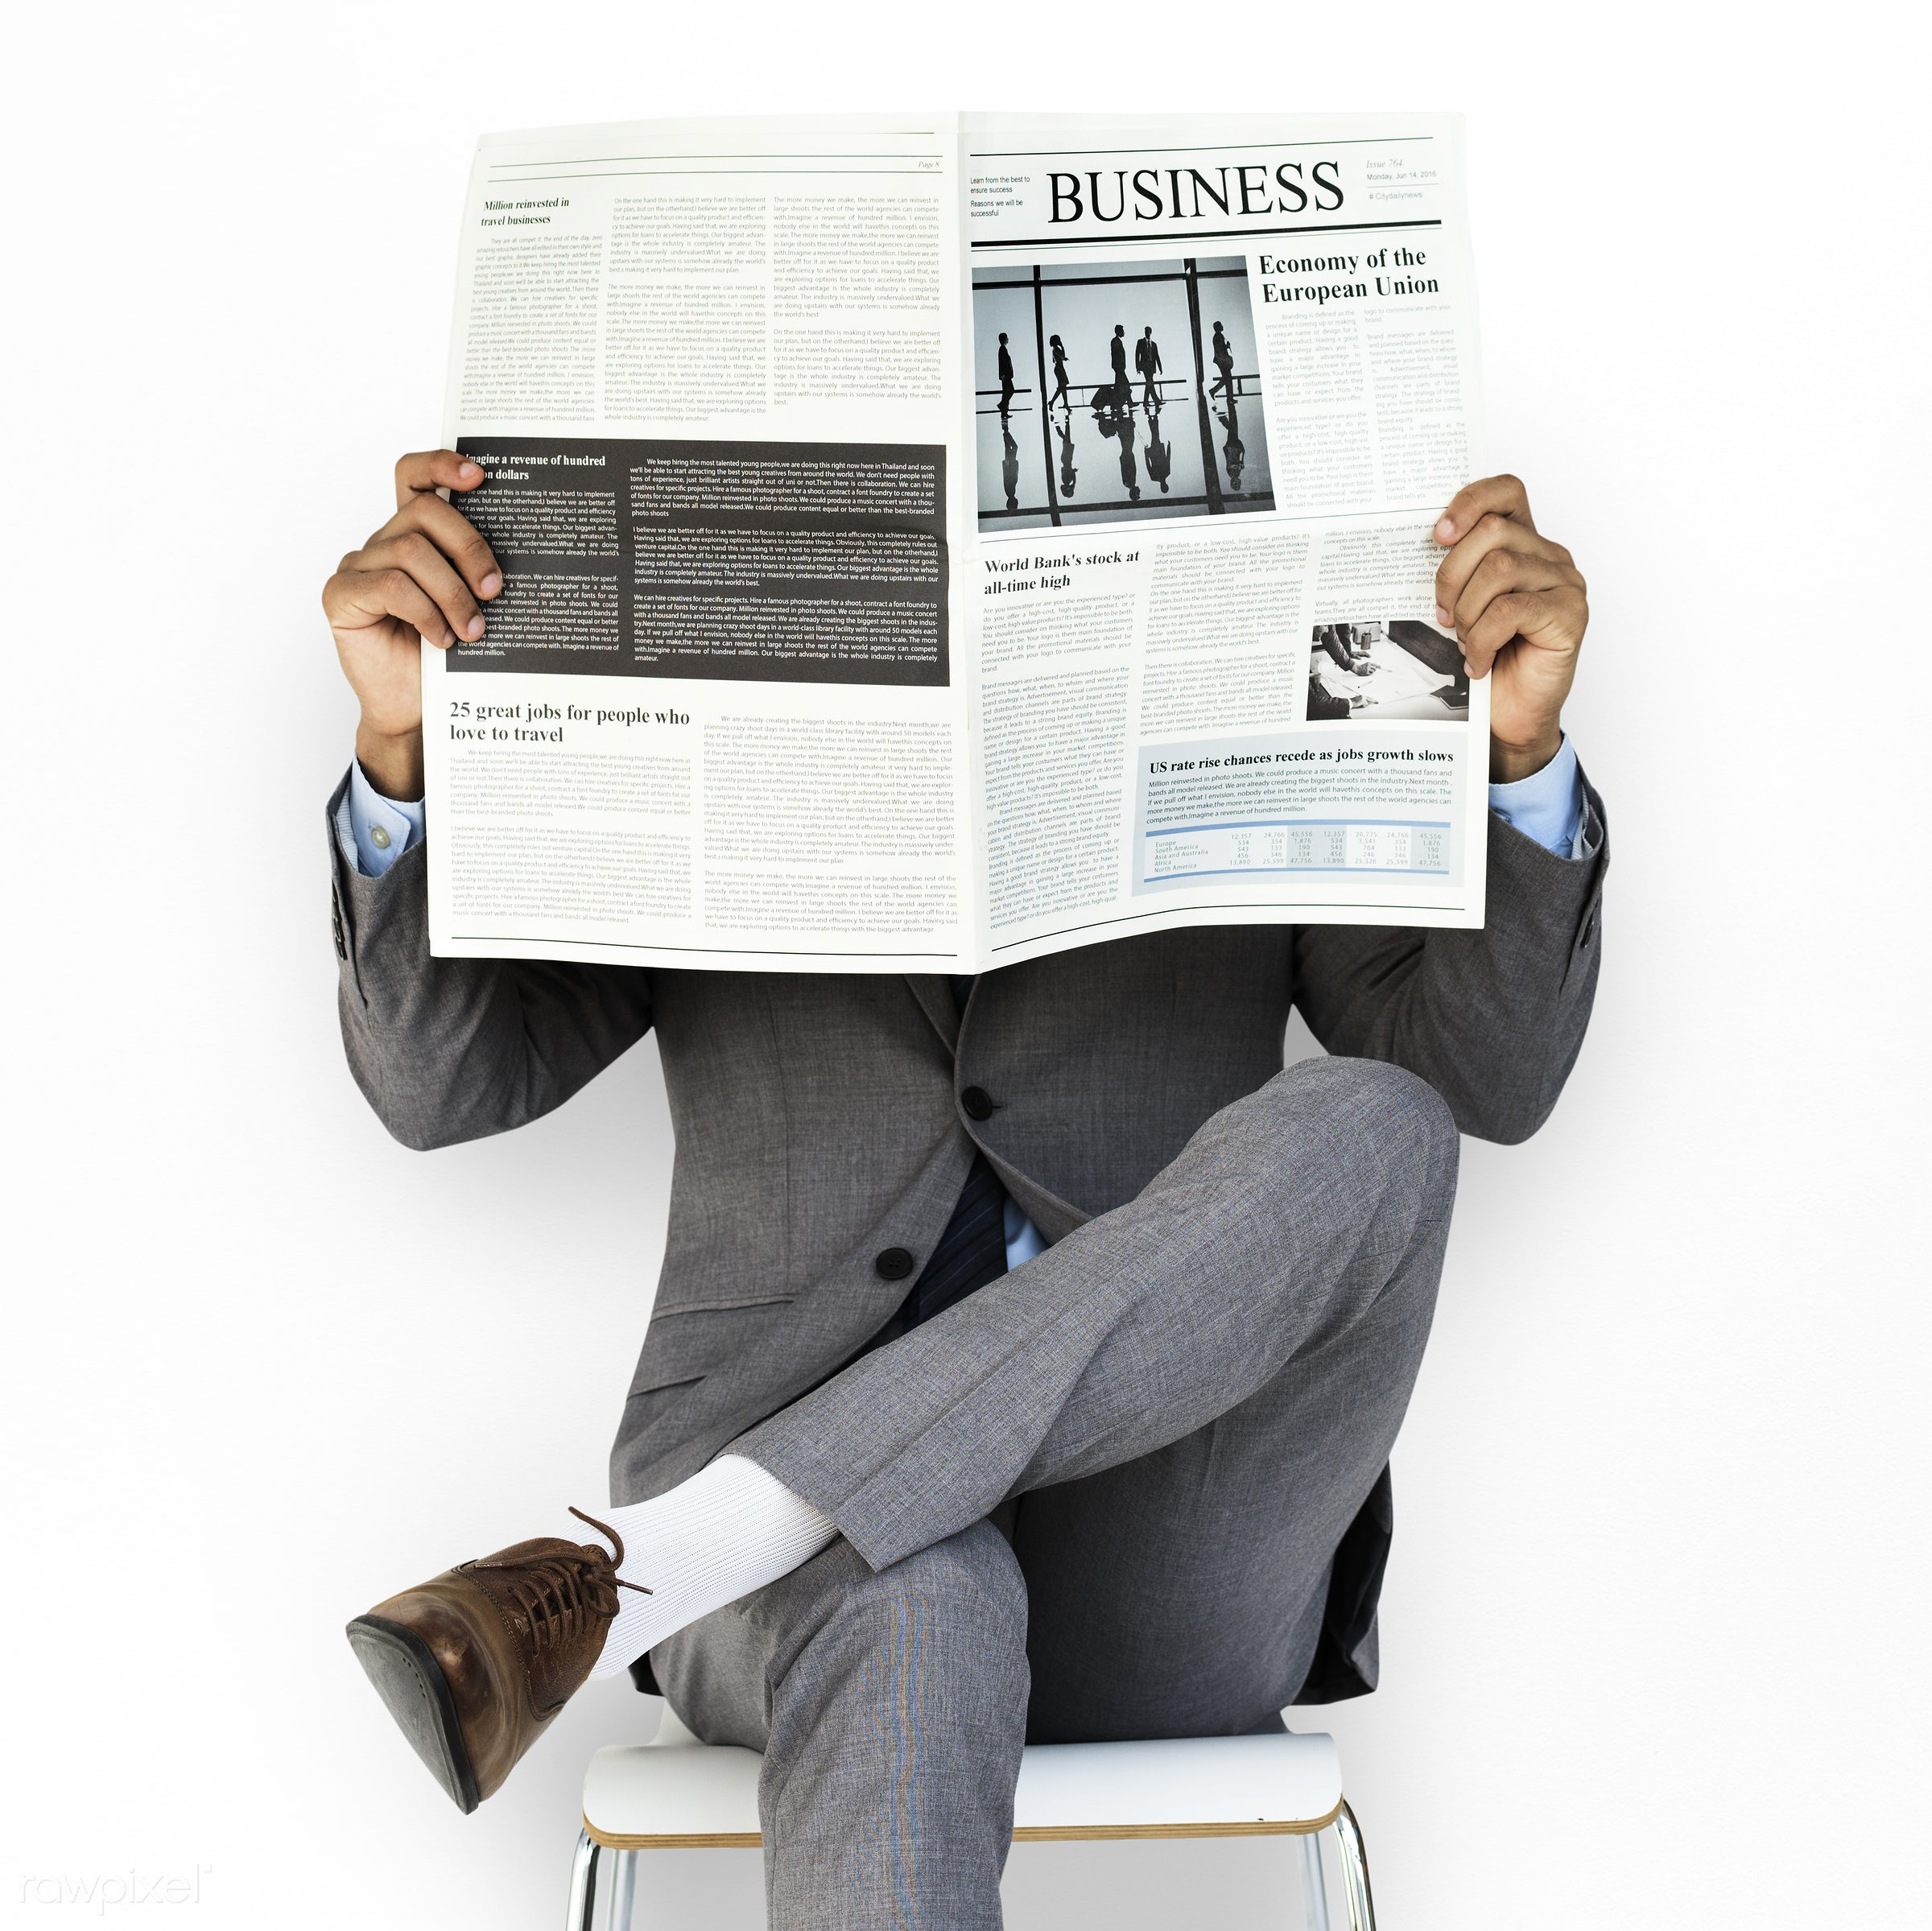 expression, studio, person, reading, business newspaper, business wear, isolated on white, people, formal dressing, business...